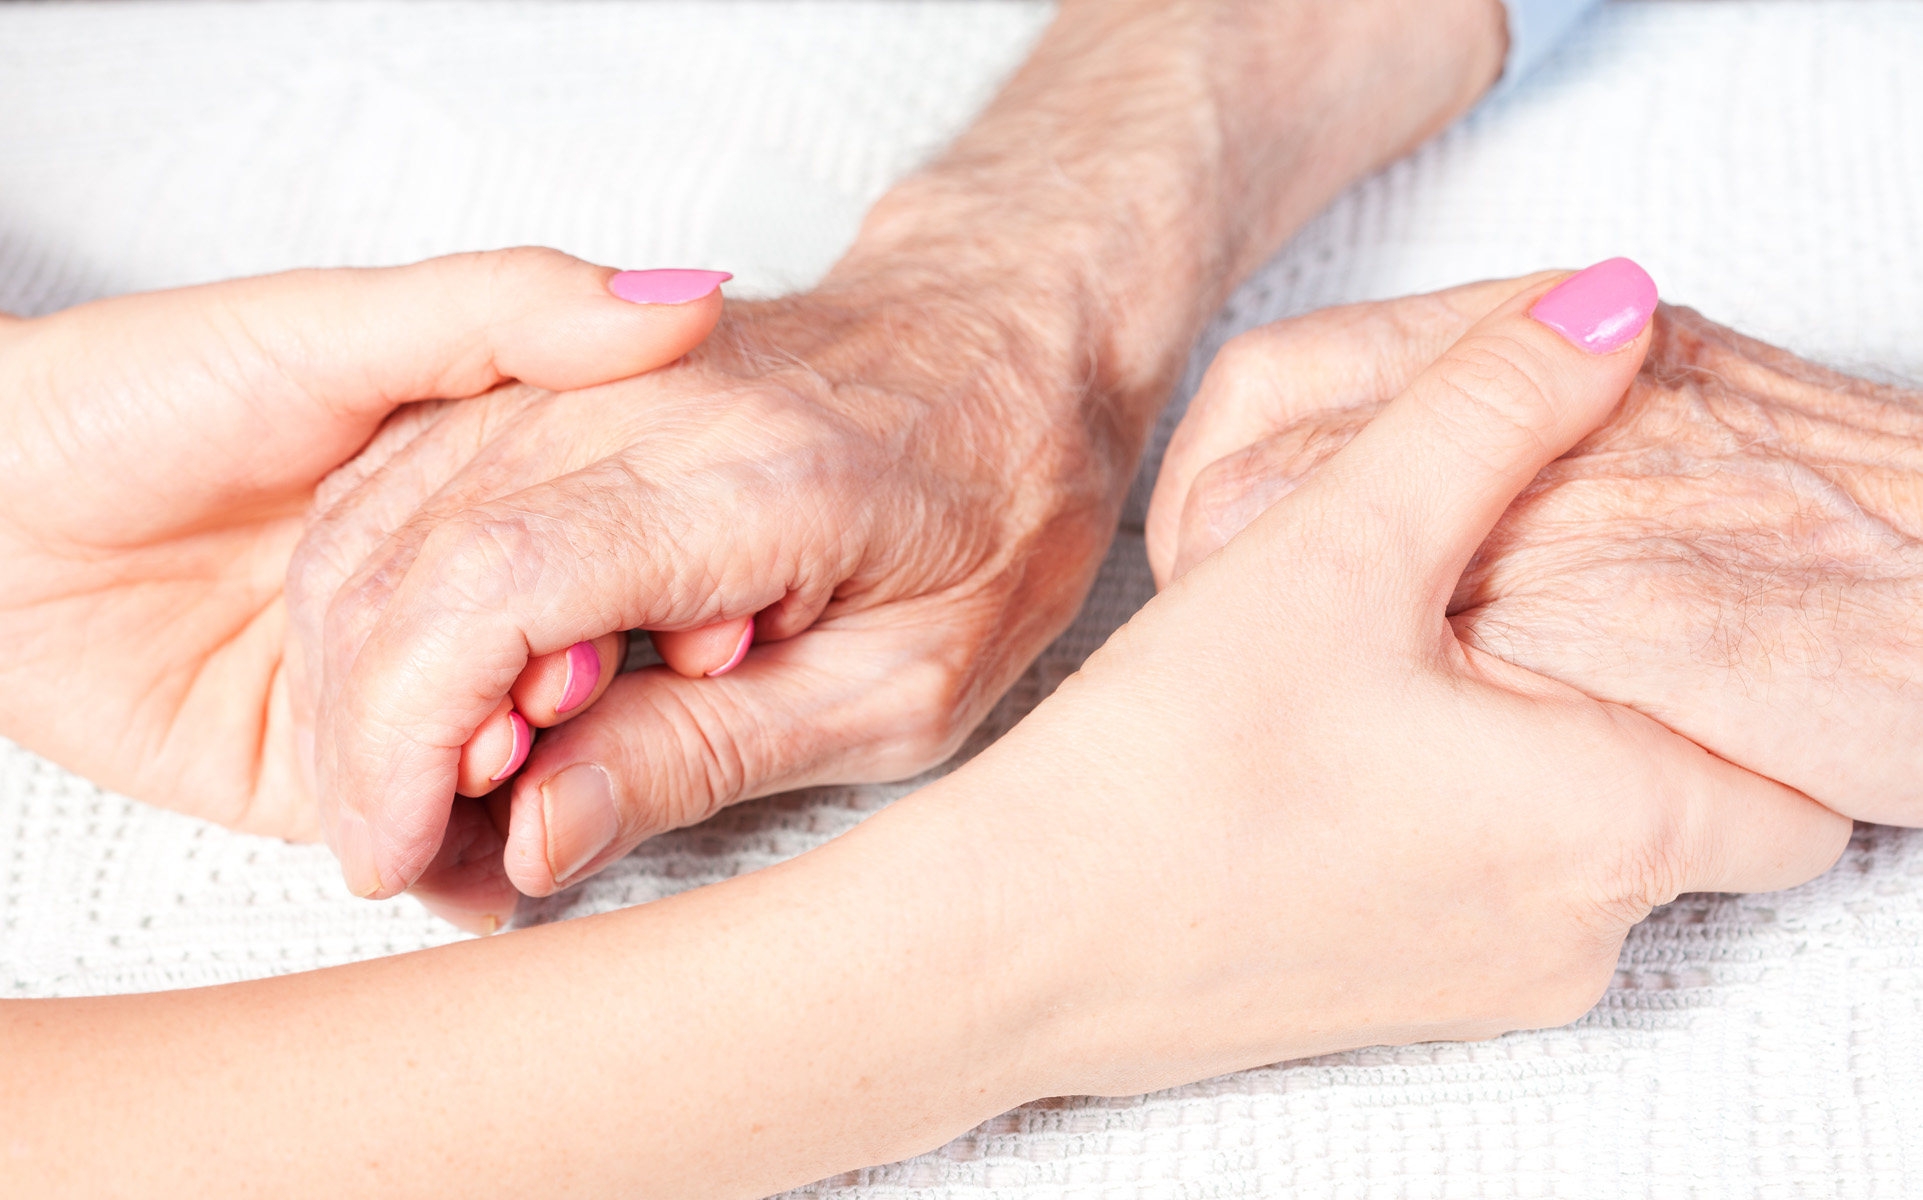 Prime Nurses With Heart Home Care Home Health Agency Download Free Architecture Designs Scobabritishbridgeorg